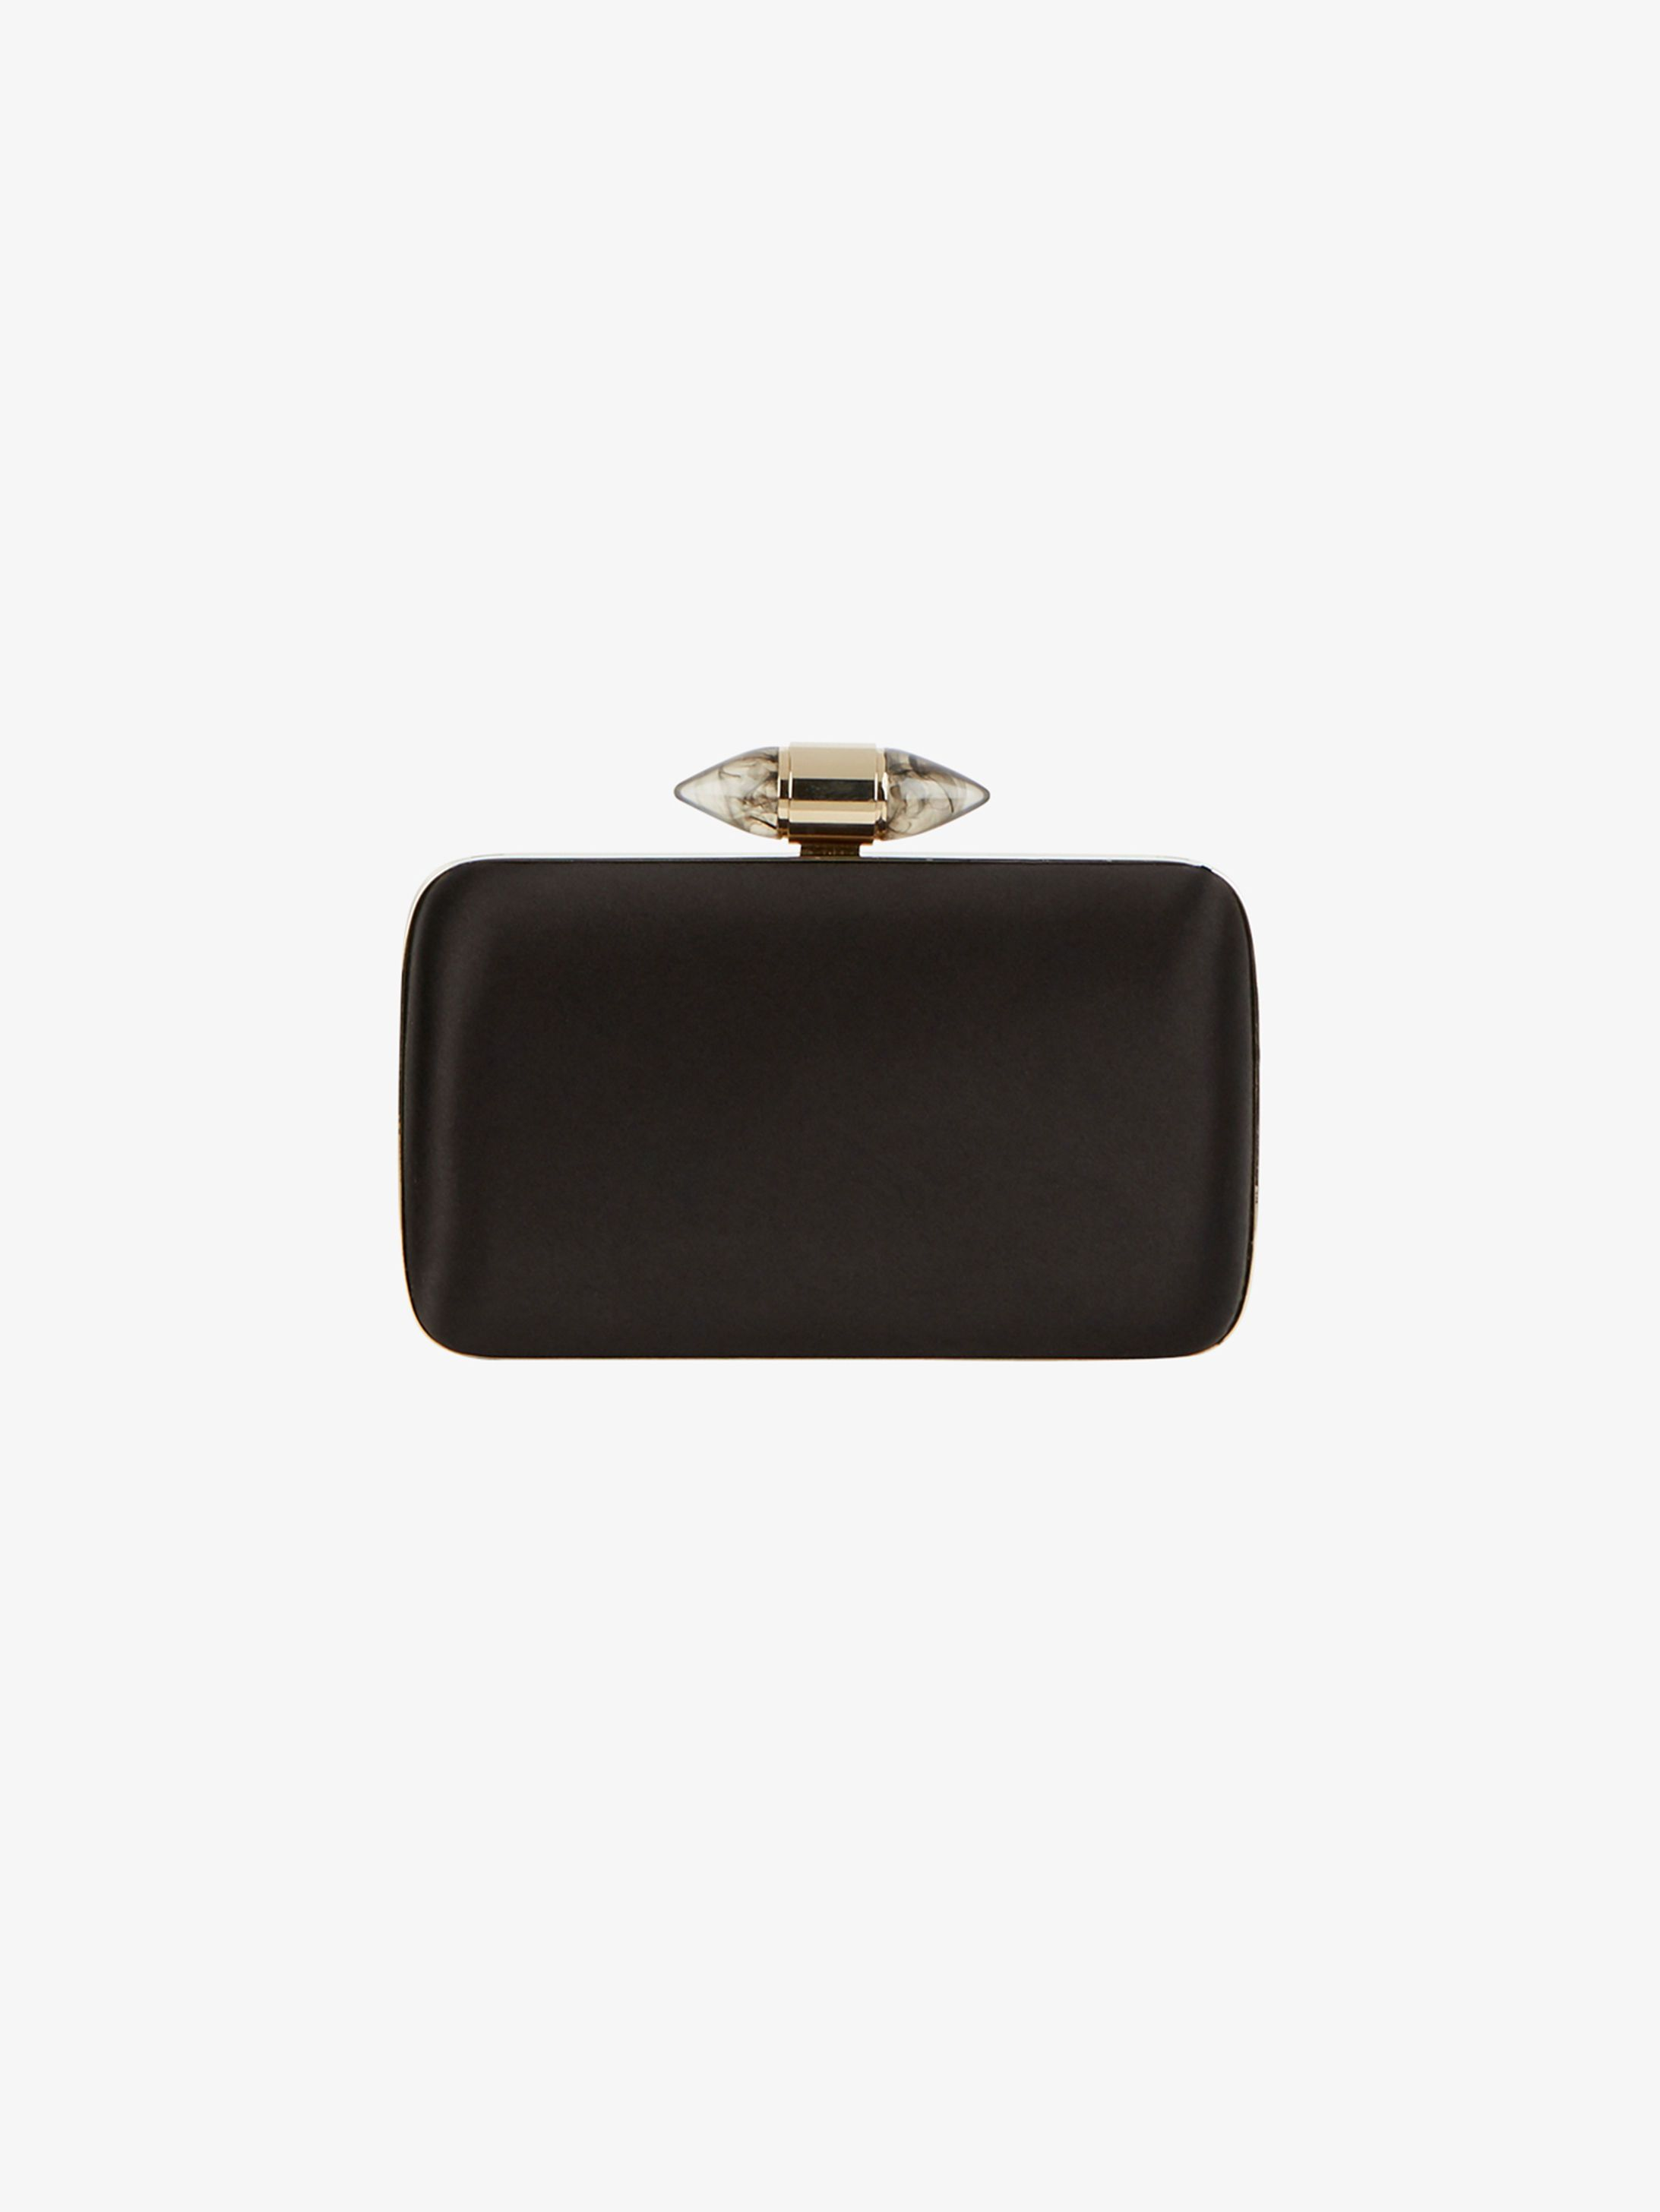 Givenchy Black Satin Clutch with Jewel Clasp.. #Givenchy